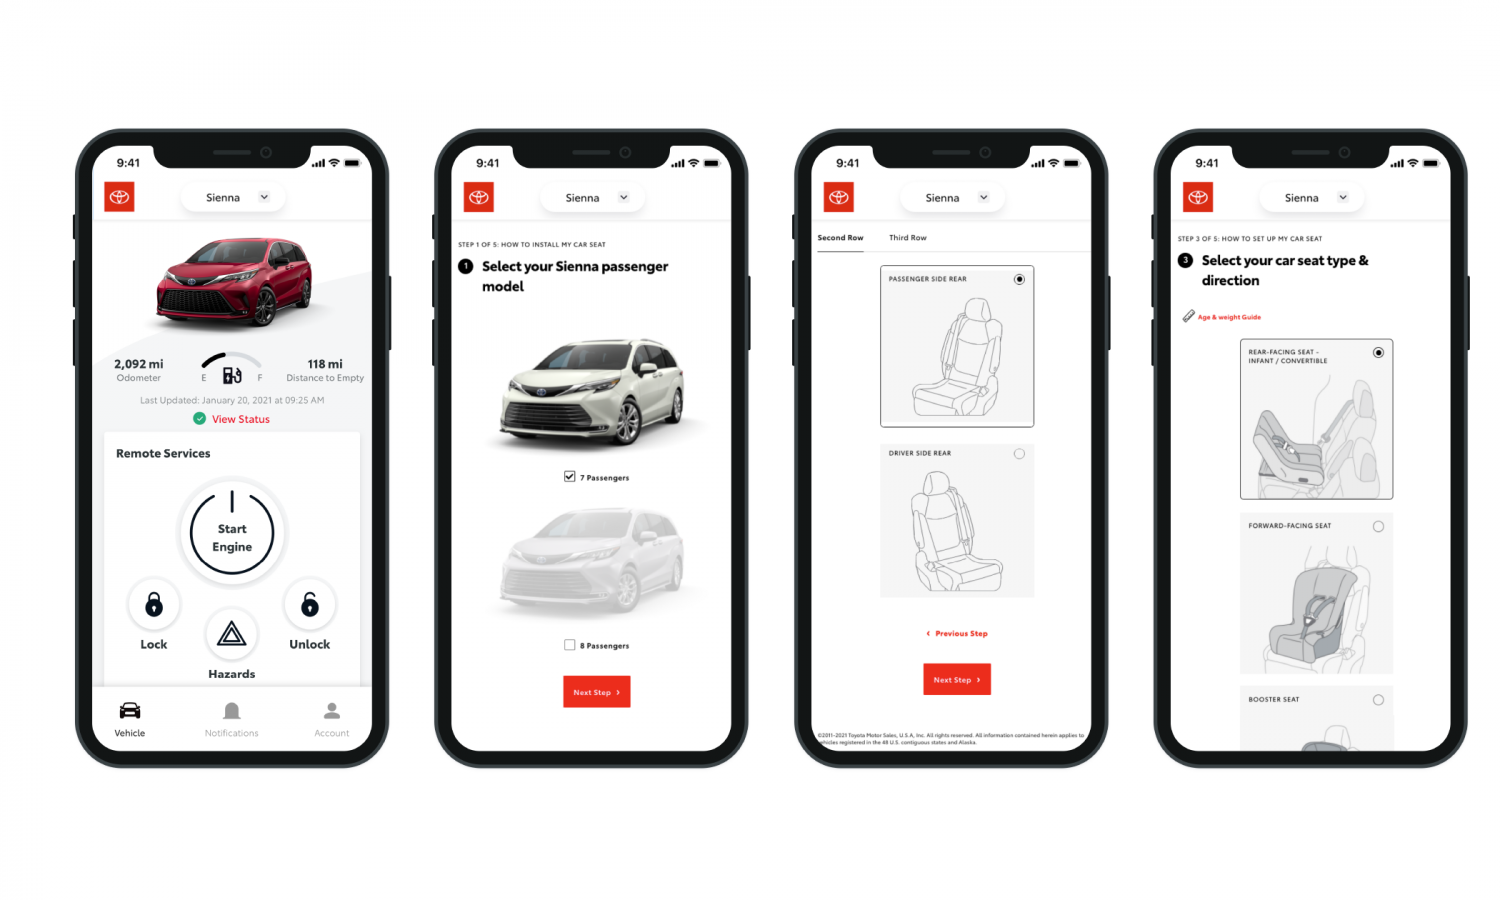 How to Install a Child Car Seat in my Toyota: There's an App for That!